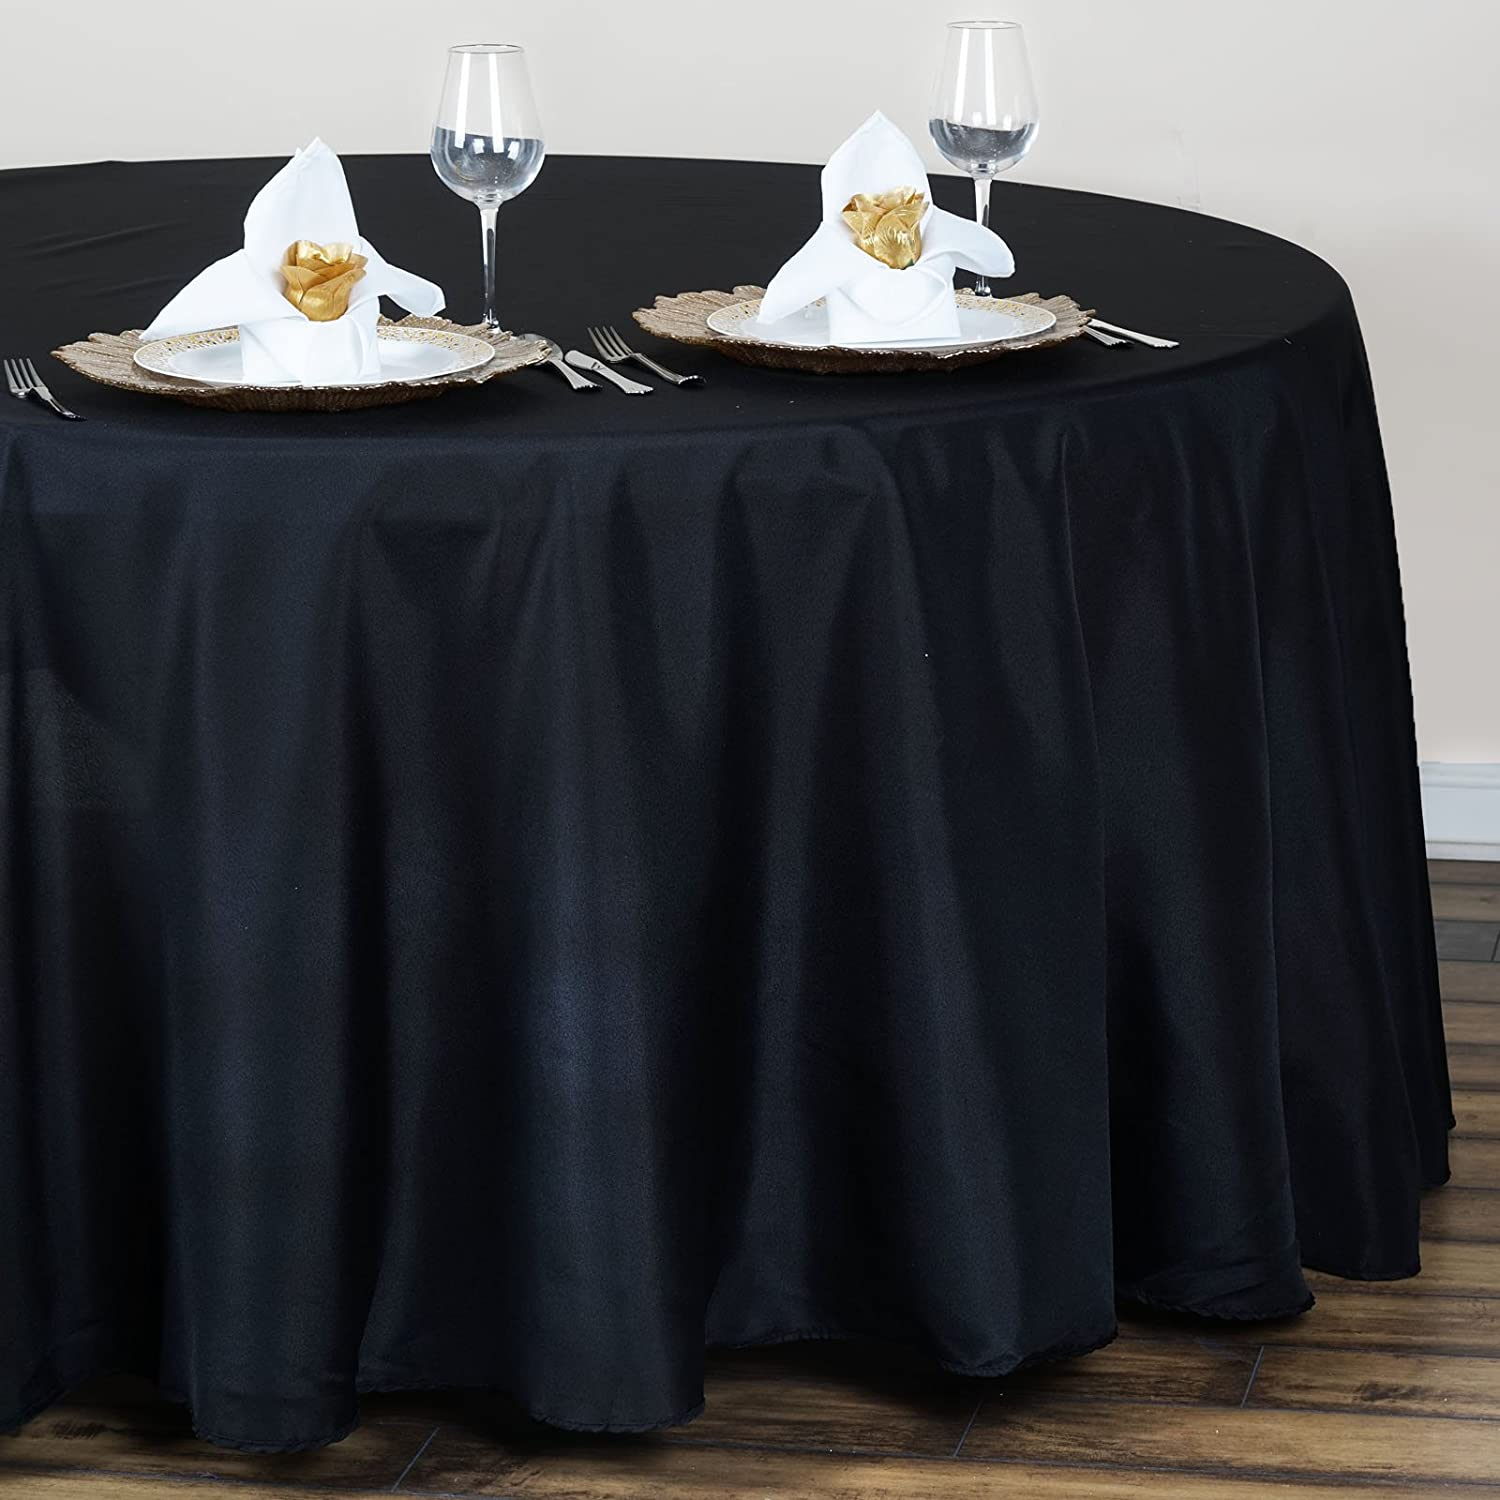 Amazon BalsaCircle 120 Inch Black Round Polyester Tablecloth